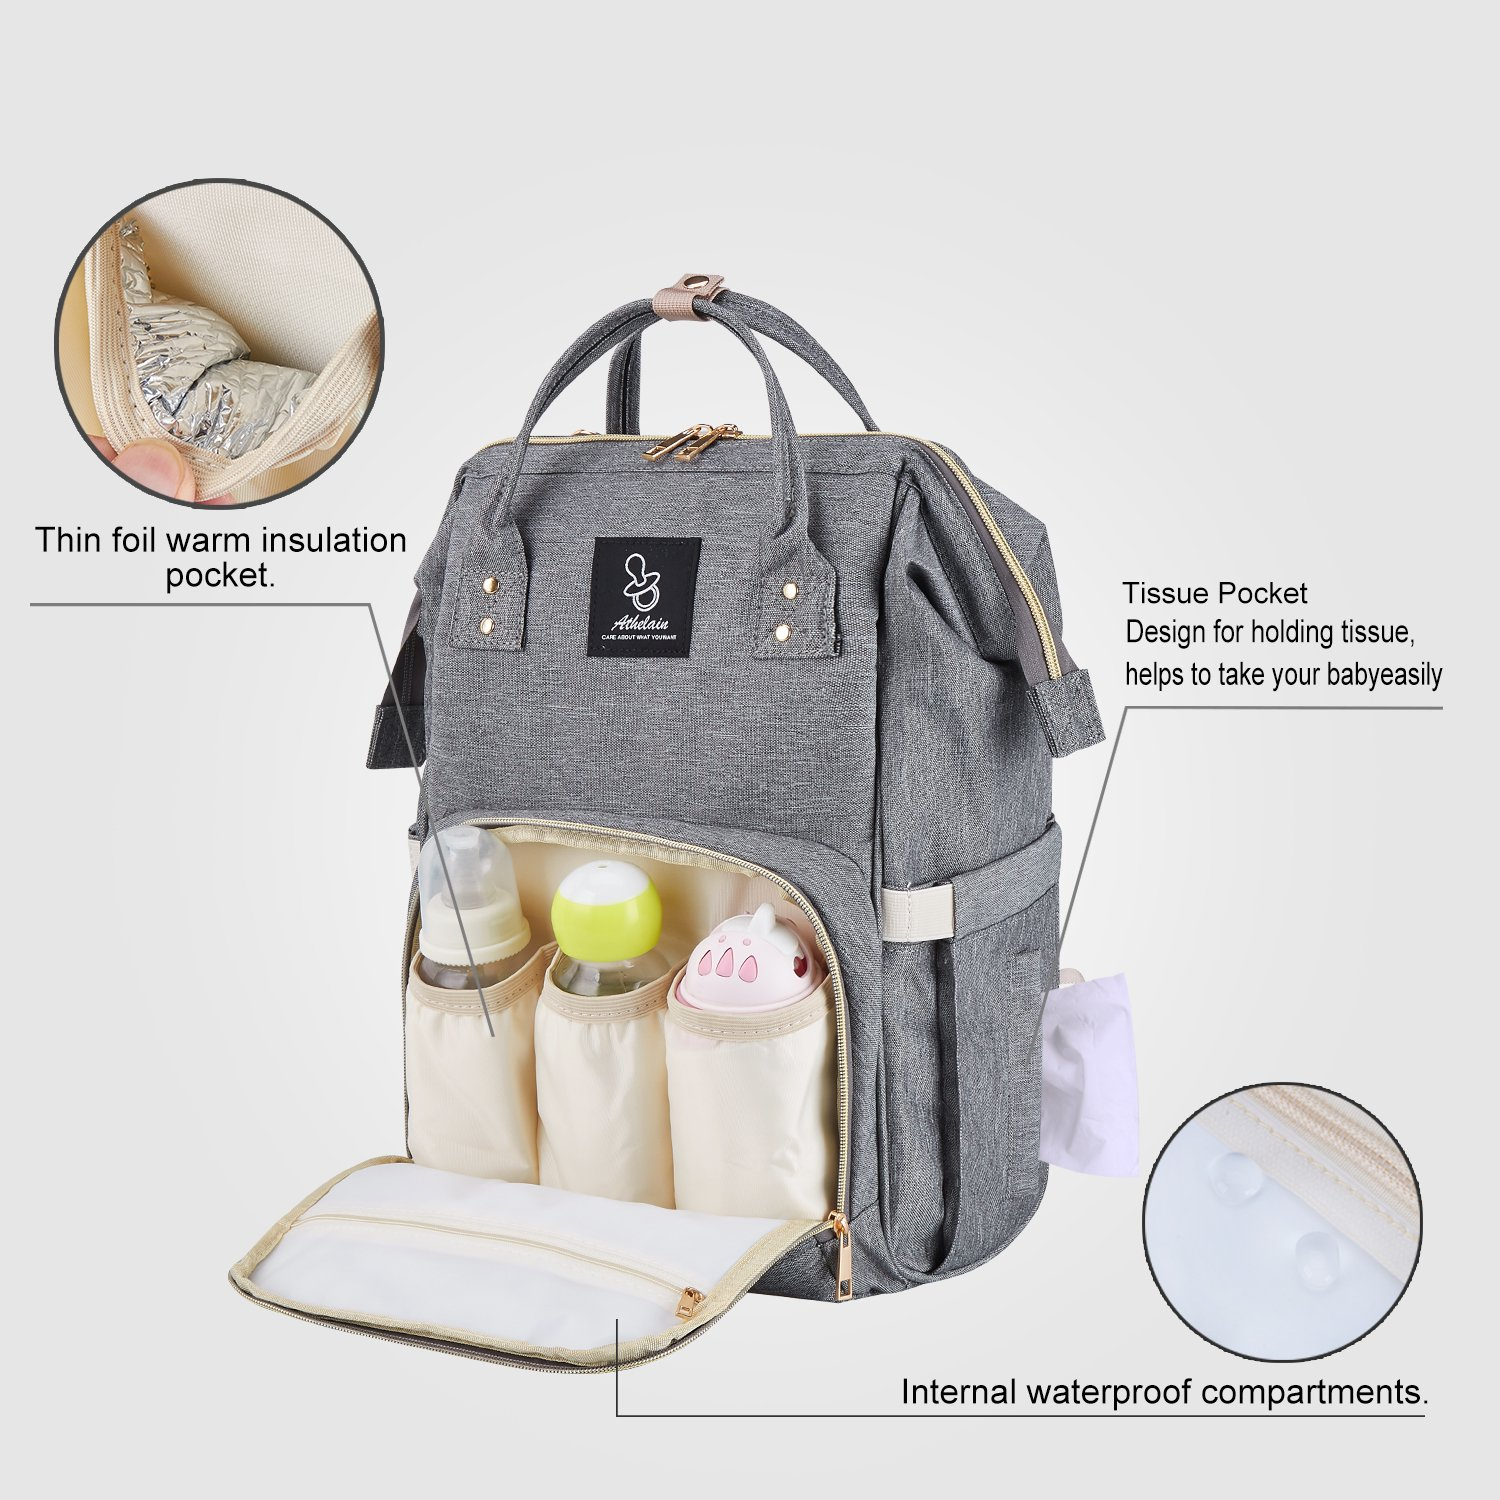 Athelain Diaper Bag,Multi-Function Waterproof Travel Backpack Nappy Bags for Baby Care, Large Capacity, Stylish and Durable (Gray) by Athelain (Image #3)